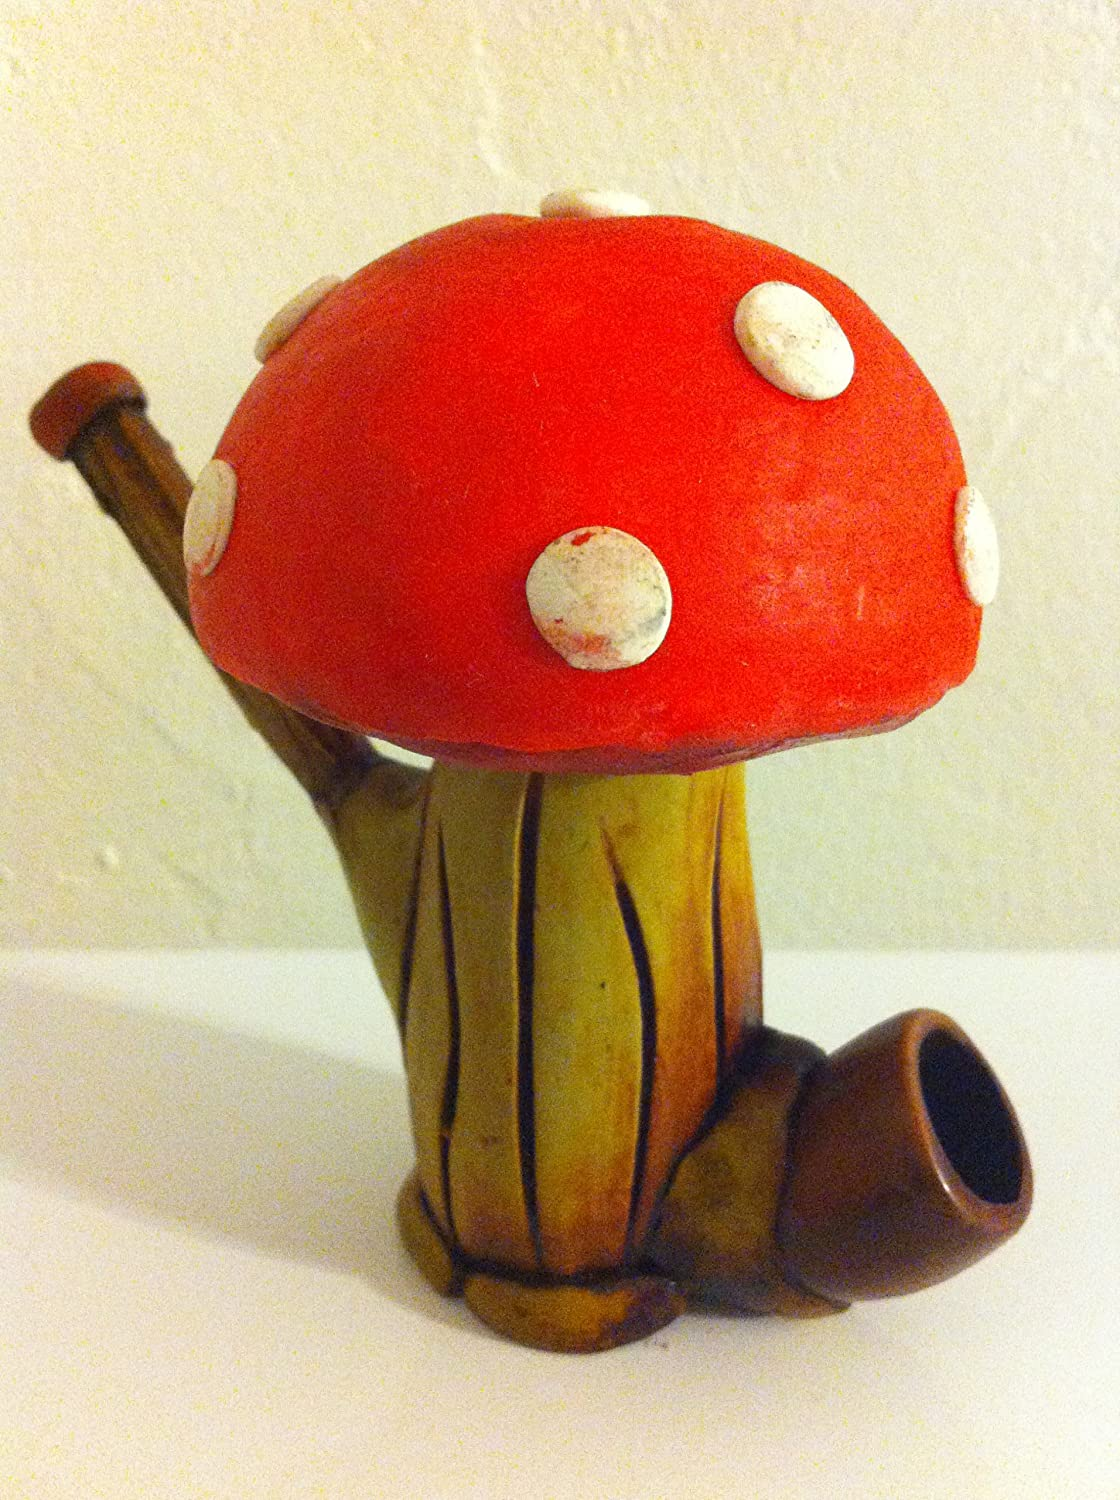 Handmade Tobacco Pipe, Power-Up Mushroom Design